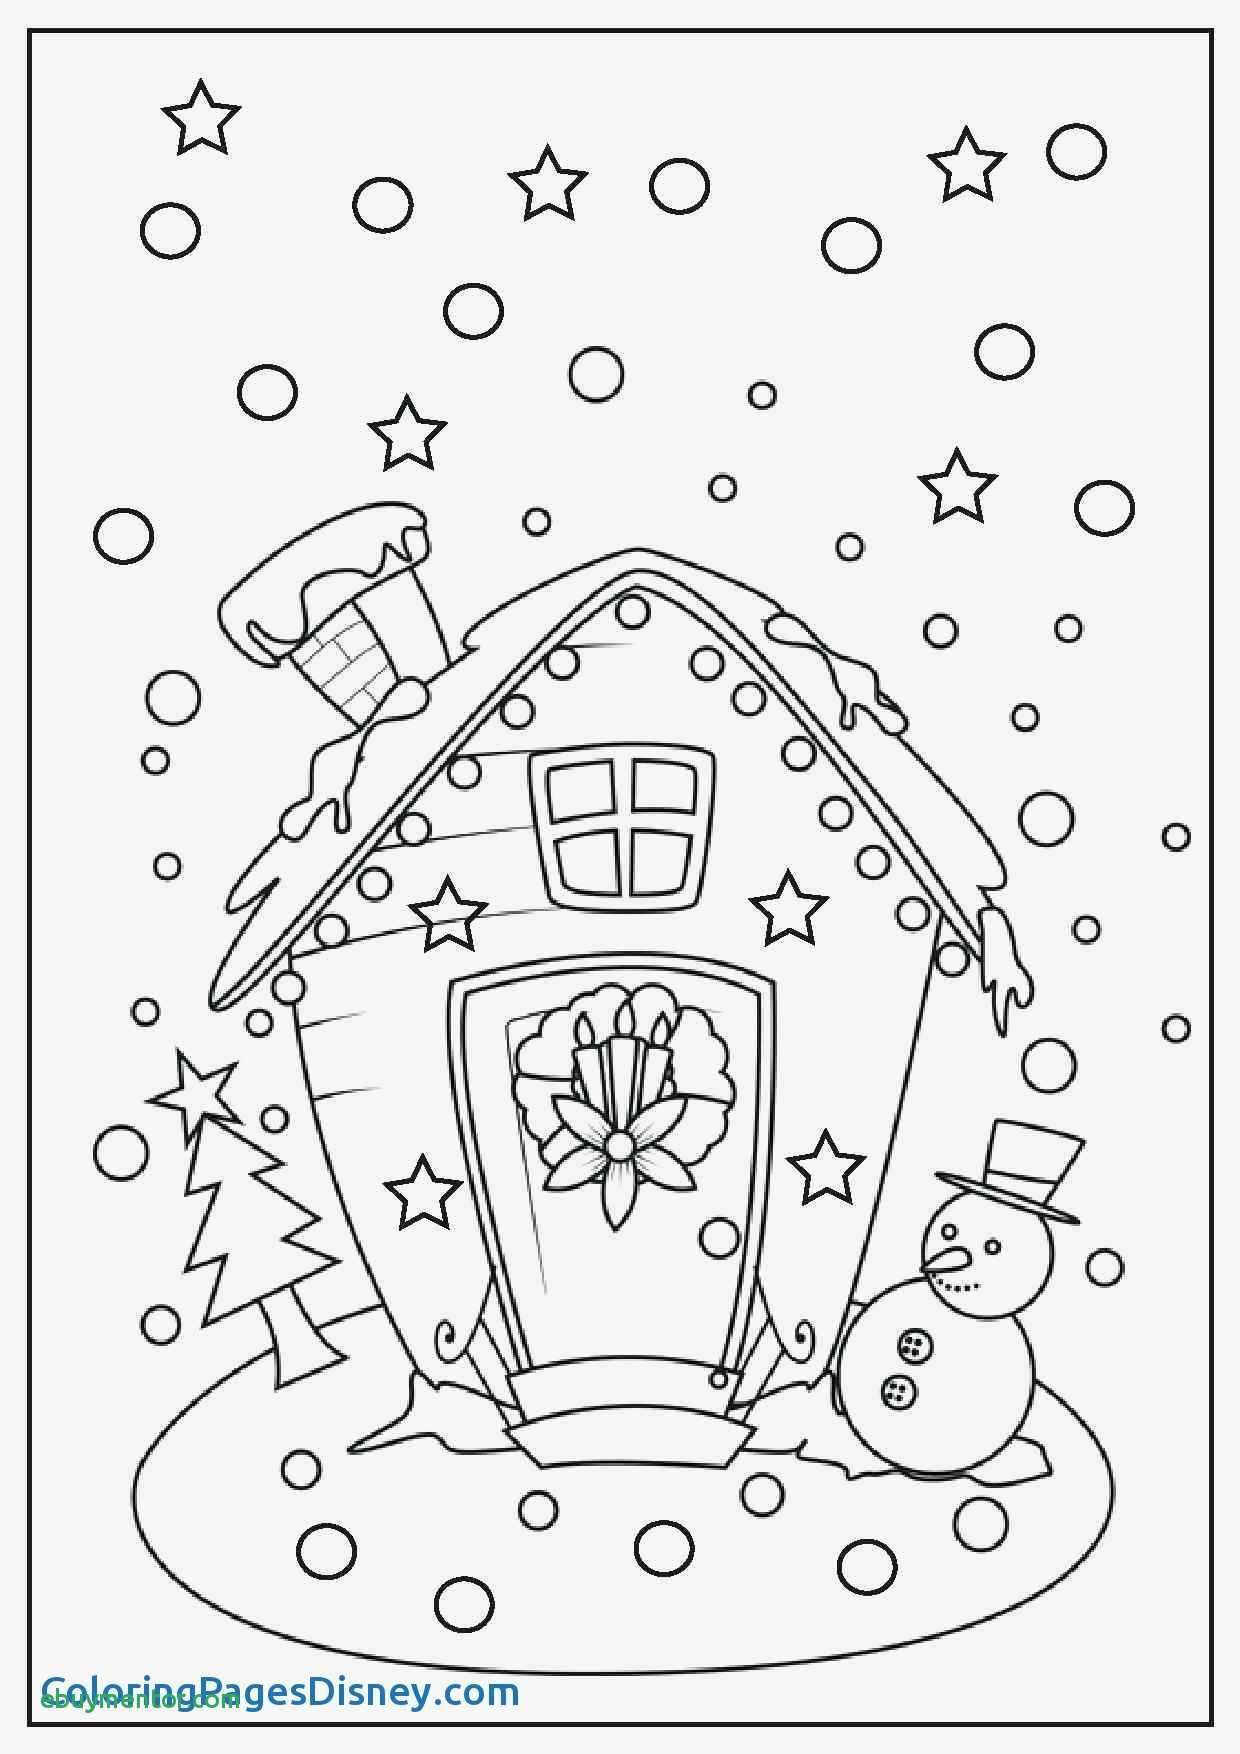 Christmas Coloring Pages Hard With Difficult For Adults Free Modern